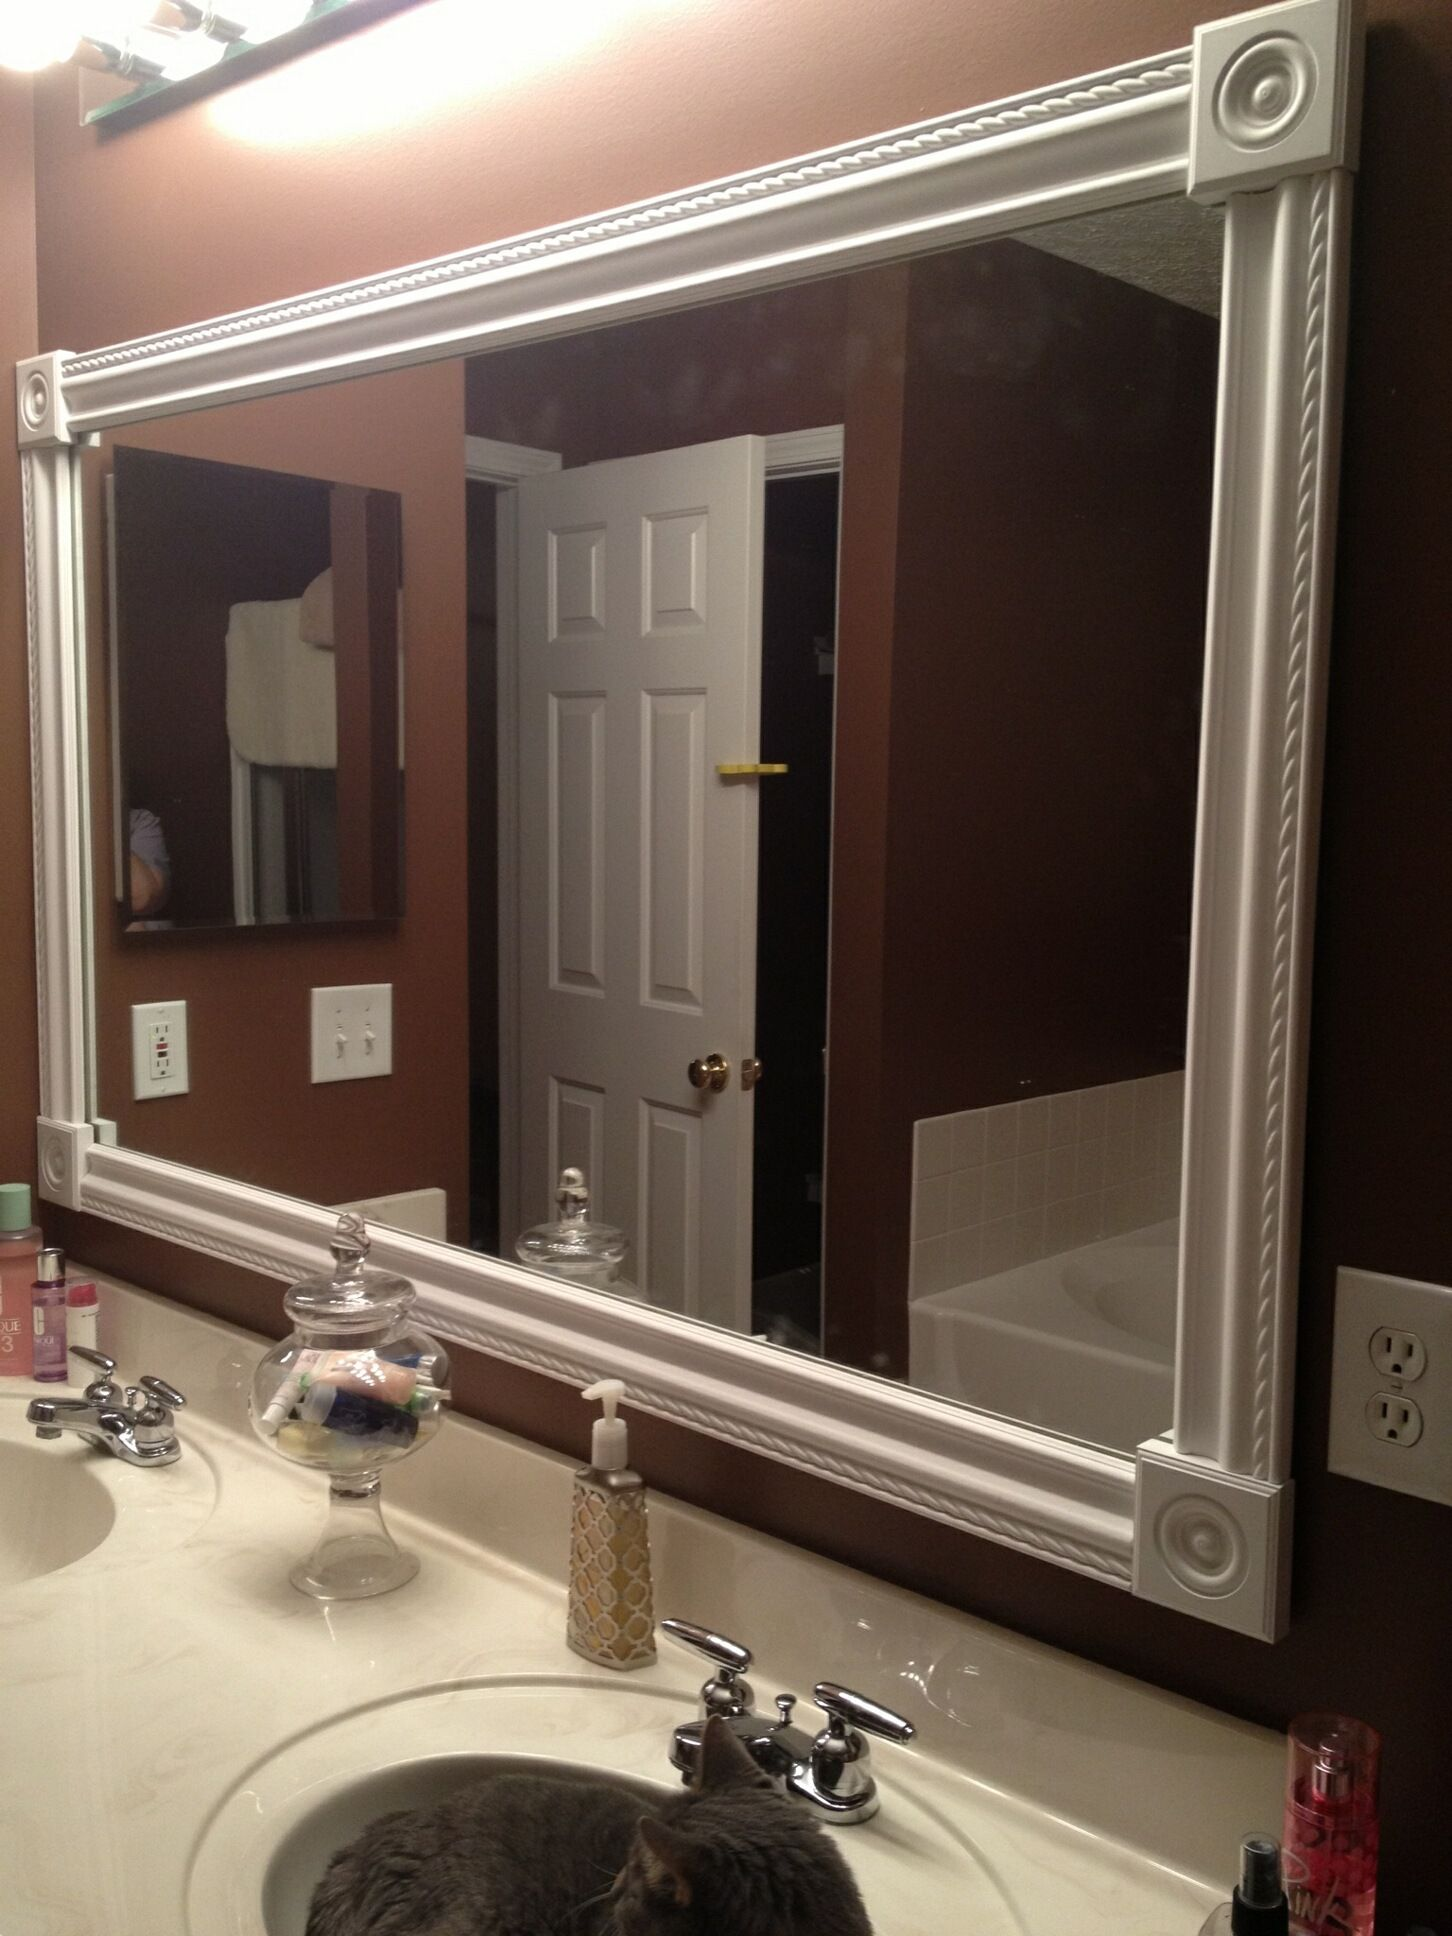 DIY bathroom mirror frame. White styrofoam molding, wood corner ...